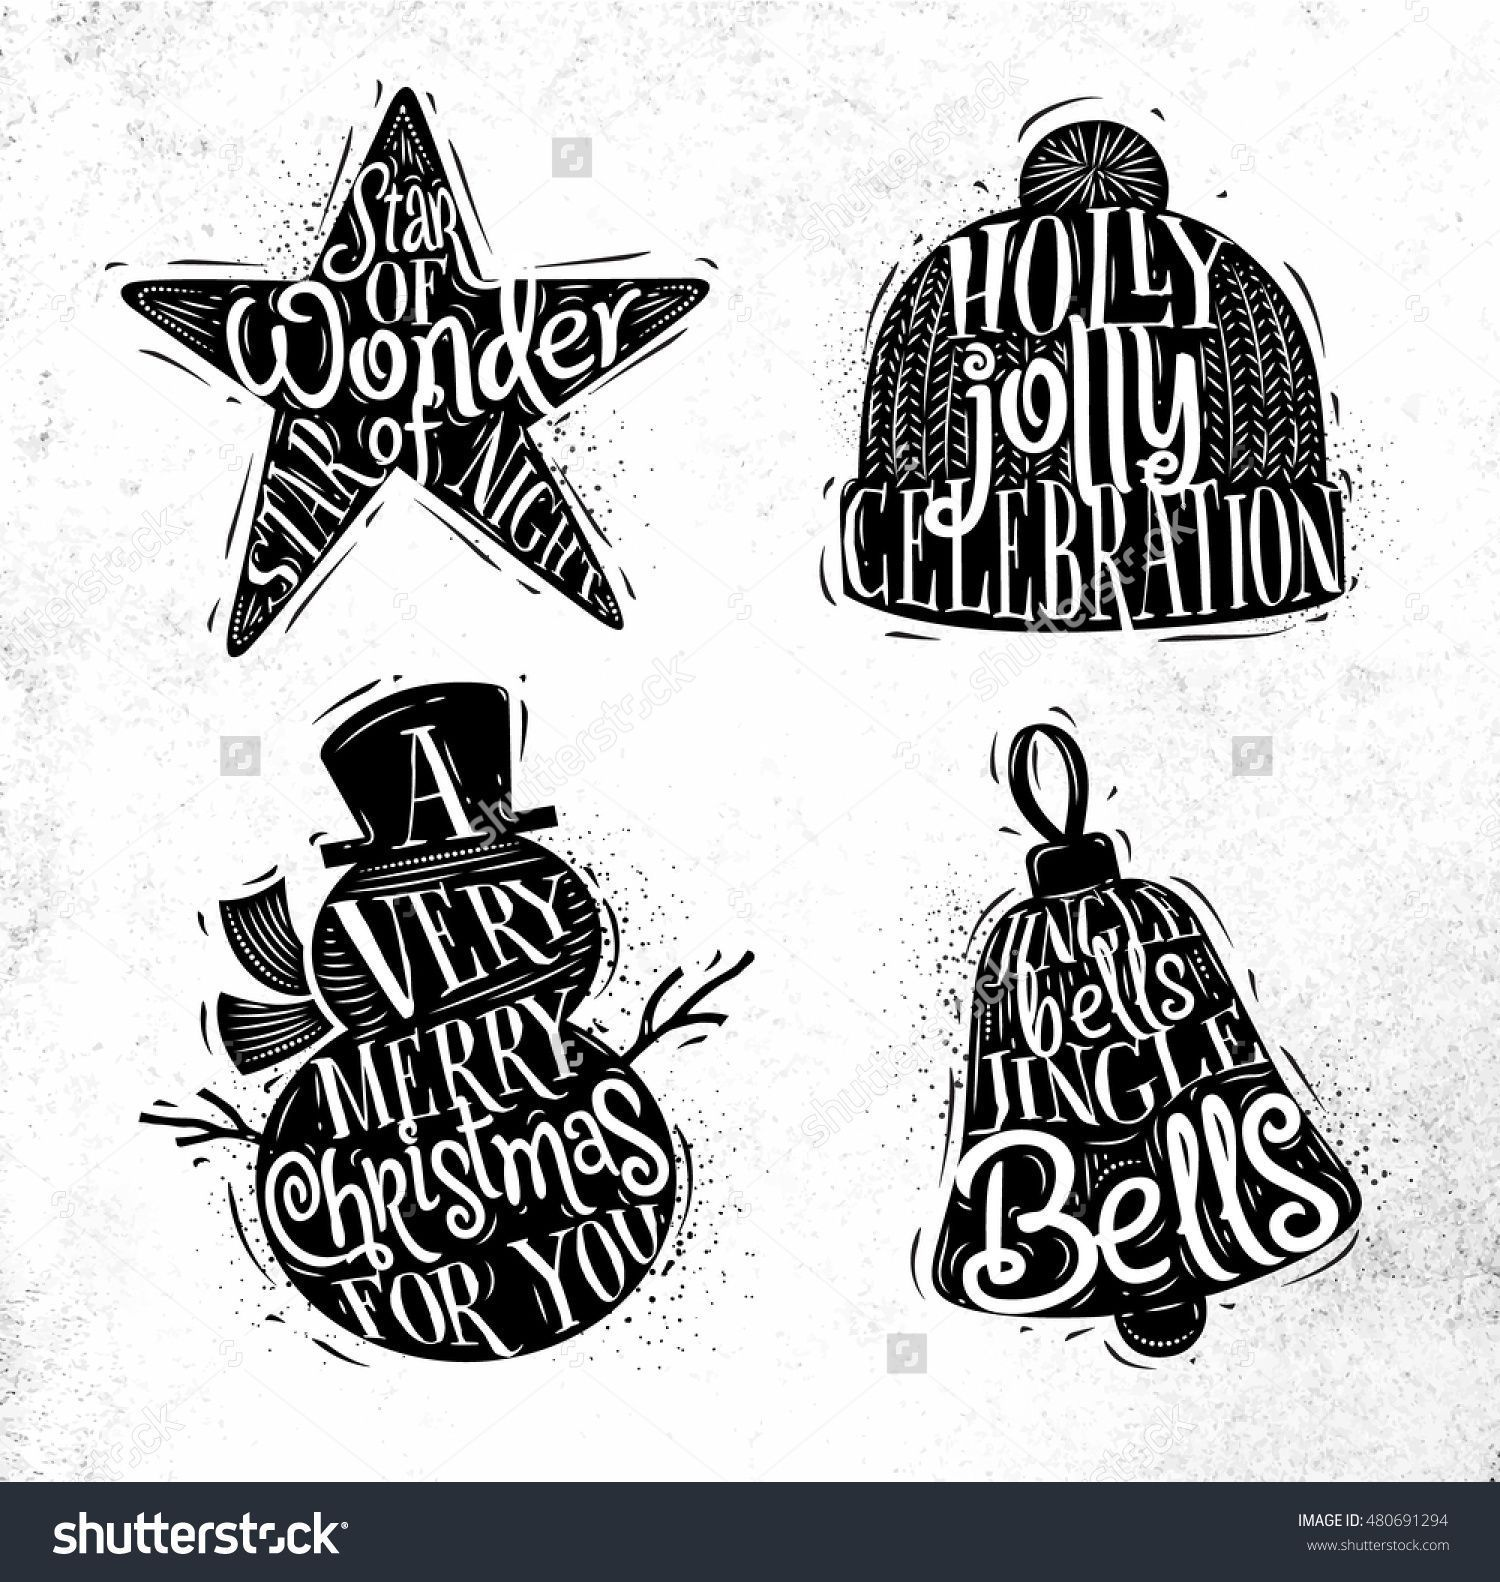 Christmas Vintage Silhouettes Star Snowman Bell Stock Vector (Royalty Free) 480691294 -    Christmas Vintage Silhouettes Star, Snowman, Bell, Winter Hat With Greeting Lettering Star Of Wonder Star Of Night, Holly Jolly Celebration, Drawing O…  #Bell #Christmas #Free #Royalty   Christmas Vintage Silhouettes Star Snowman Bell Stock Vector (Royalty Free) 480691294  Catherine Anderson Blog canderson8258 Celebration Christmas Vintage Silhouettes Star, Snowman, Bell, Winter Hat With Greeting Letterin